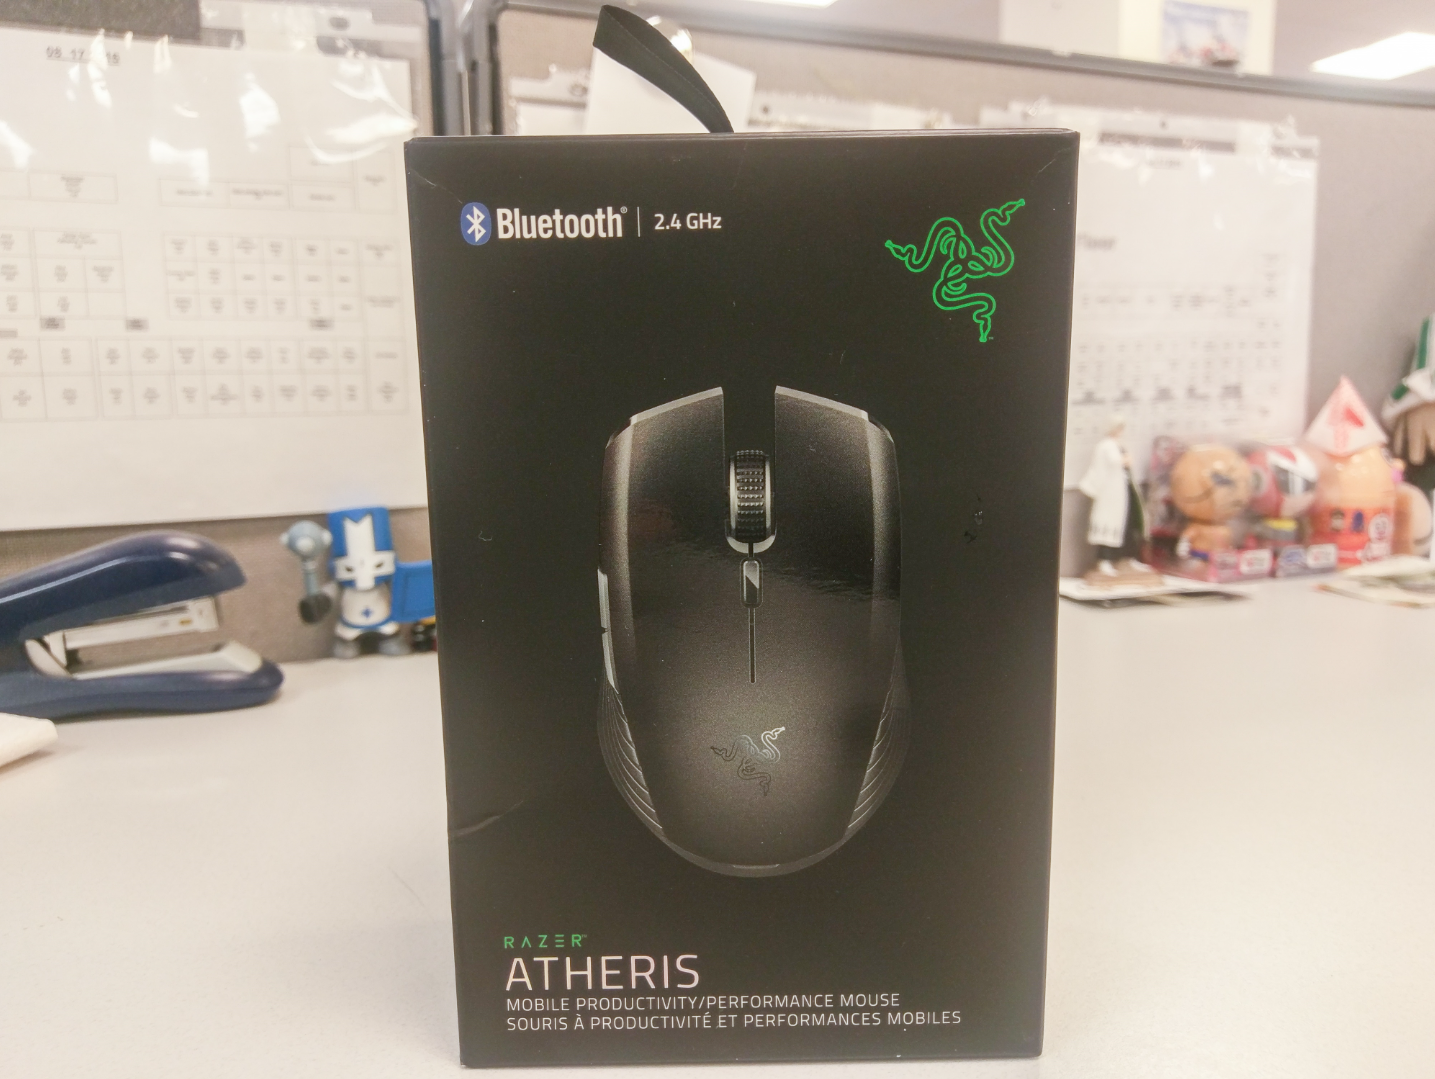 Mobile Mouse for Work and Play: Razer Atheris Mouse Review